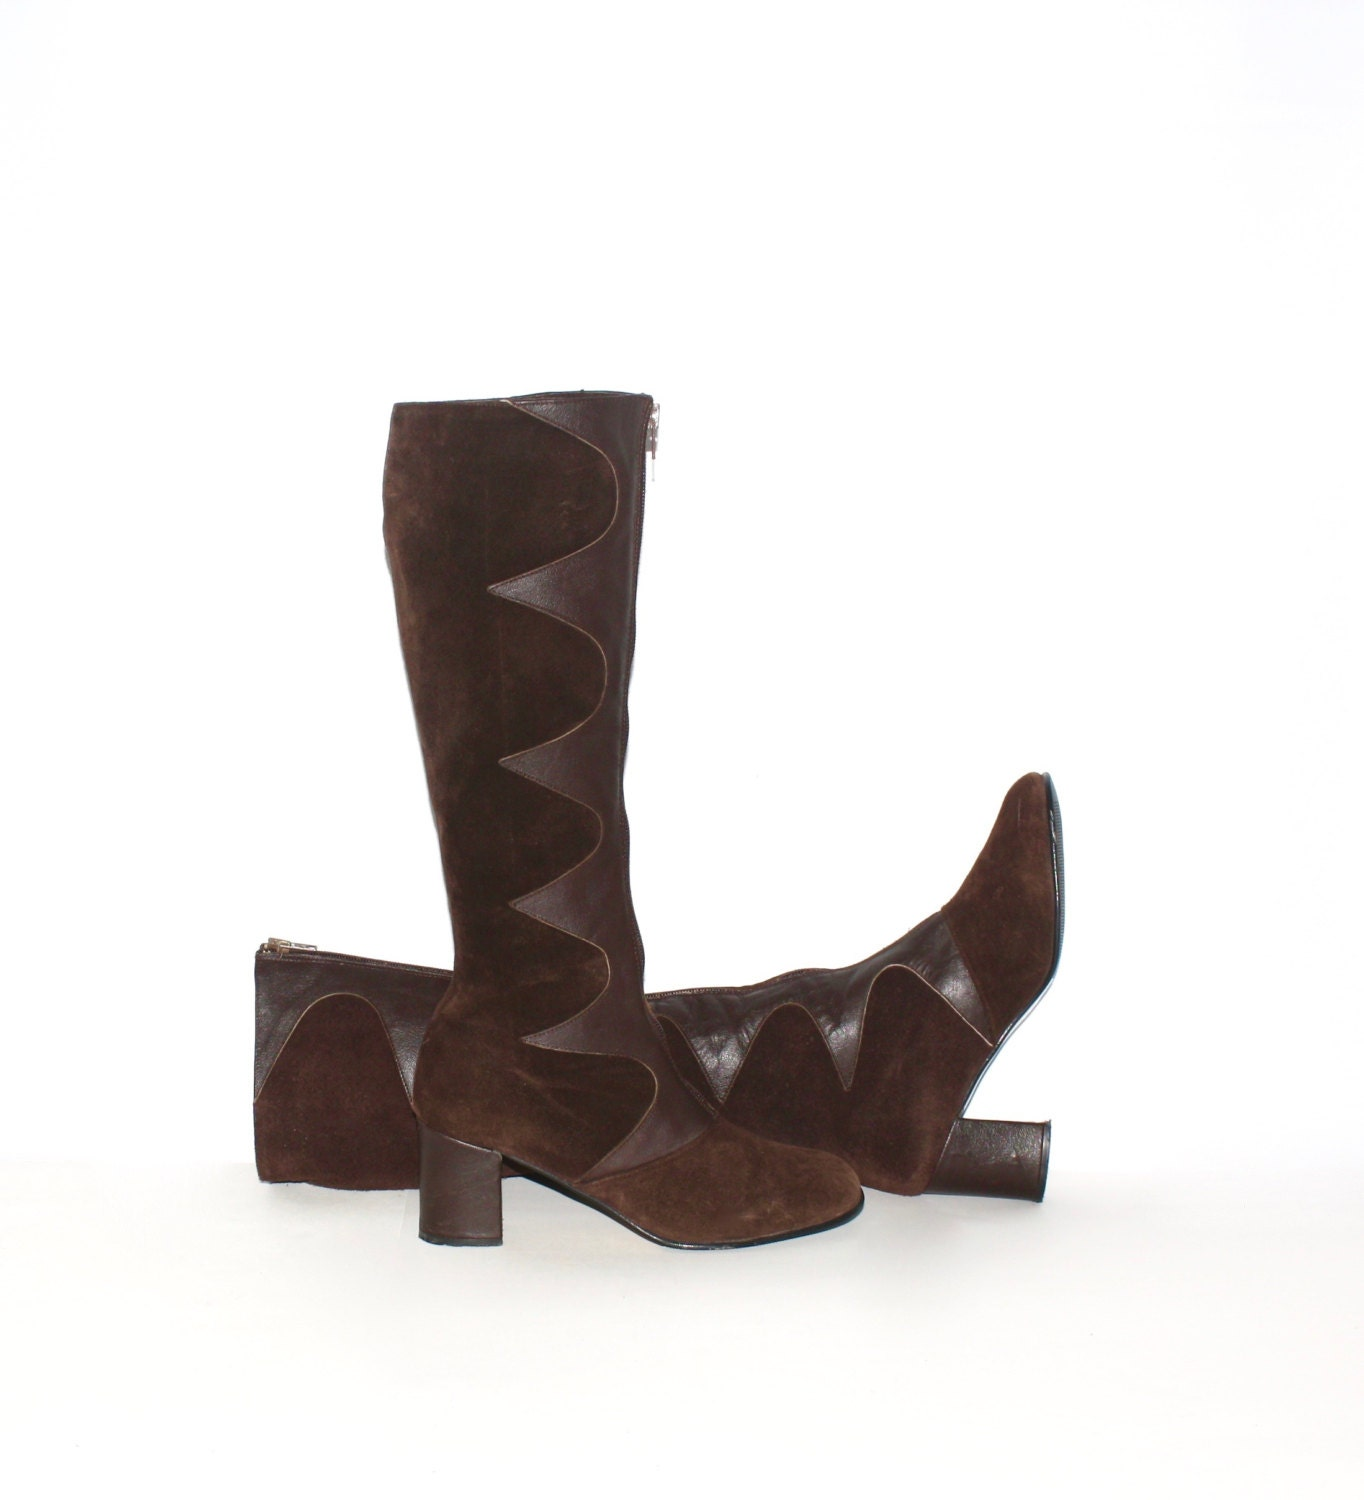 vintage brown suede leather gogo boots wave zip by statedstyle